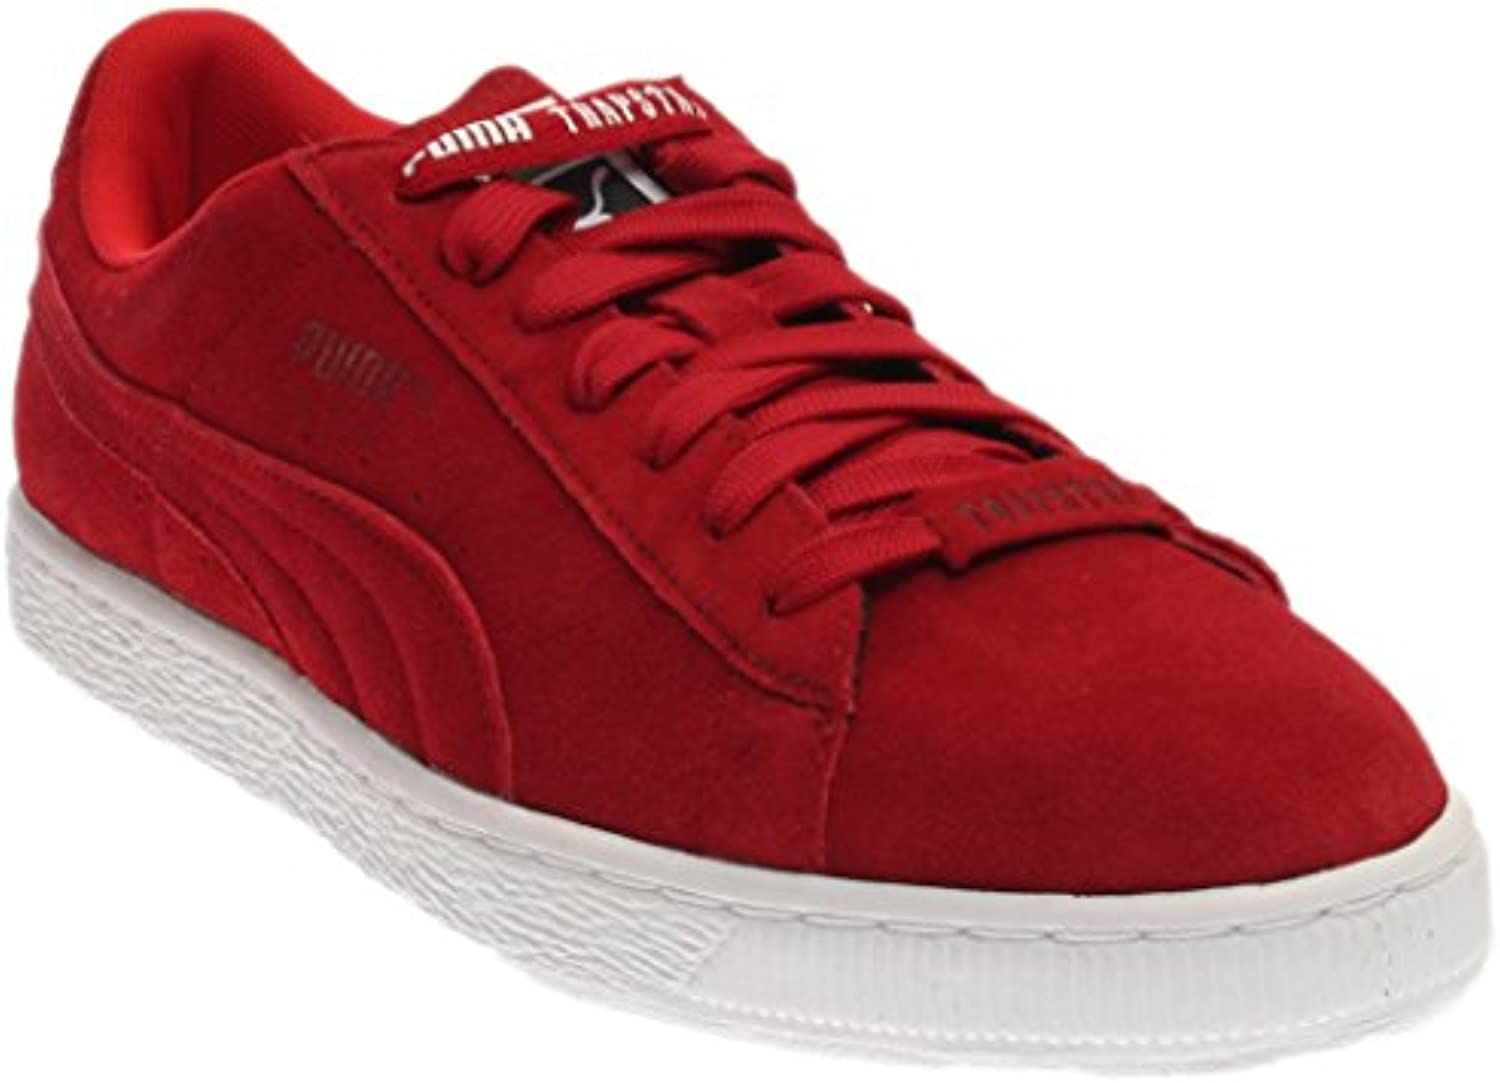 Puma Suede X Trapstar Men Round Toe Suede Red Sneakers